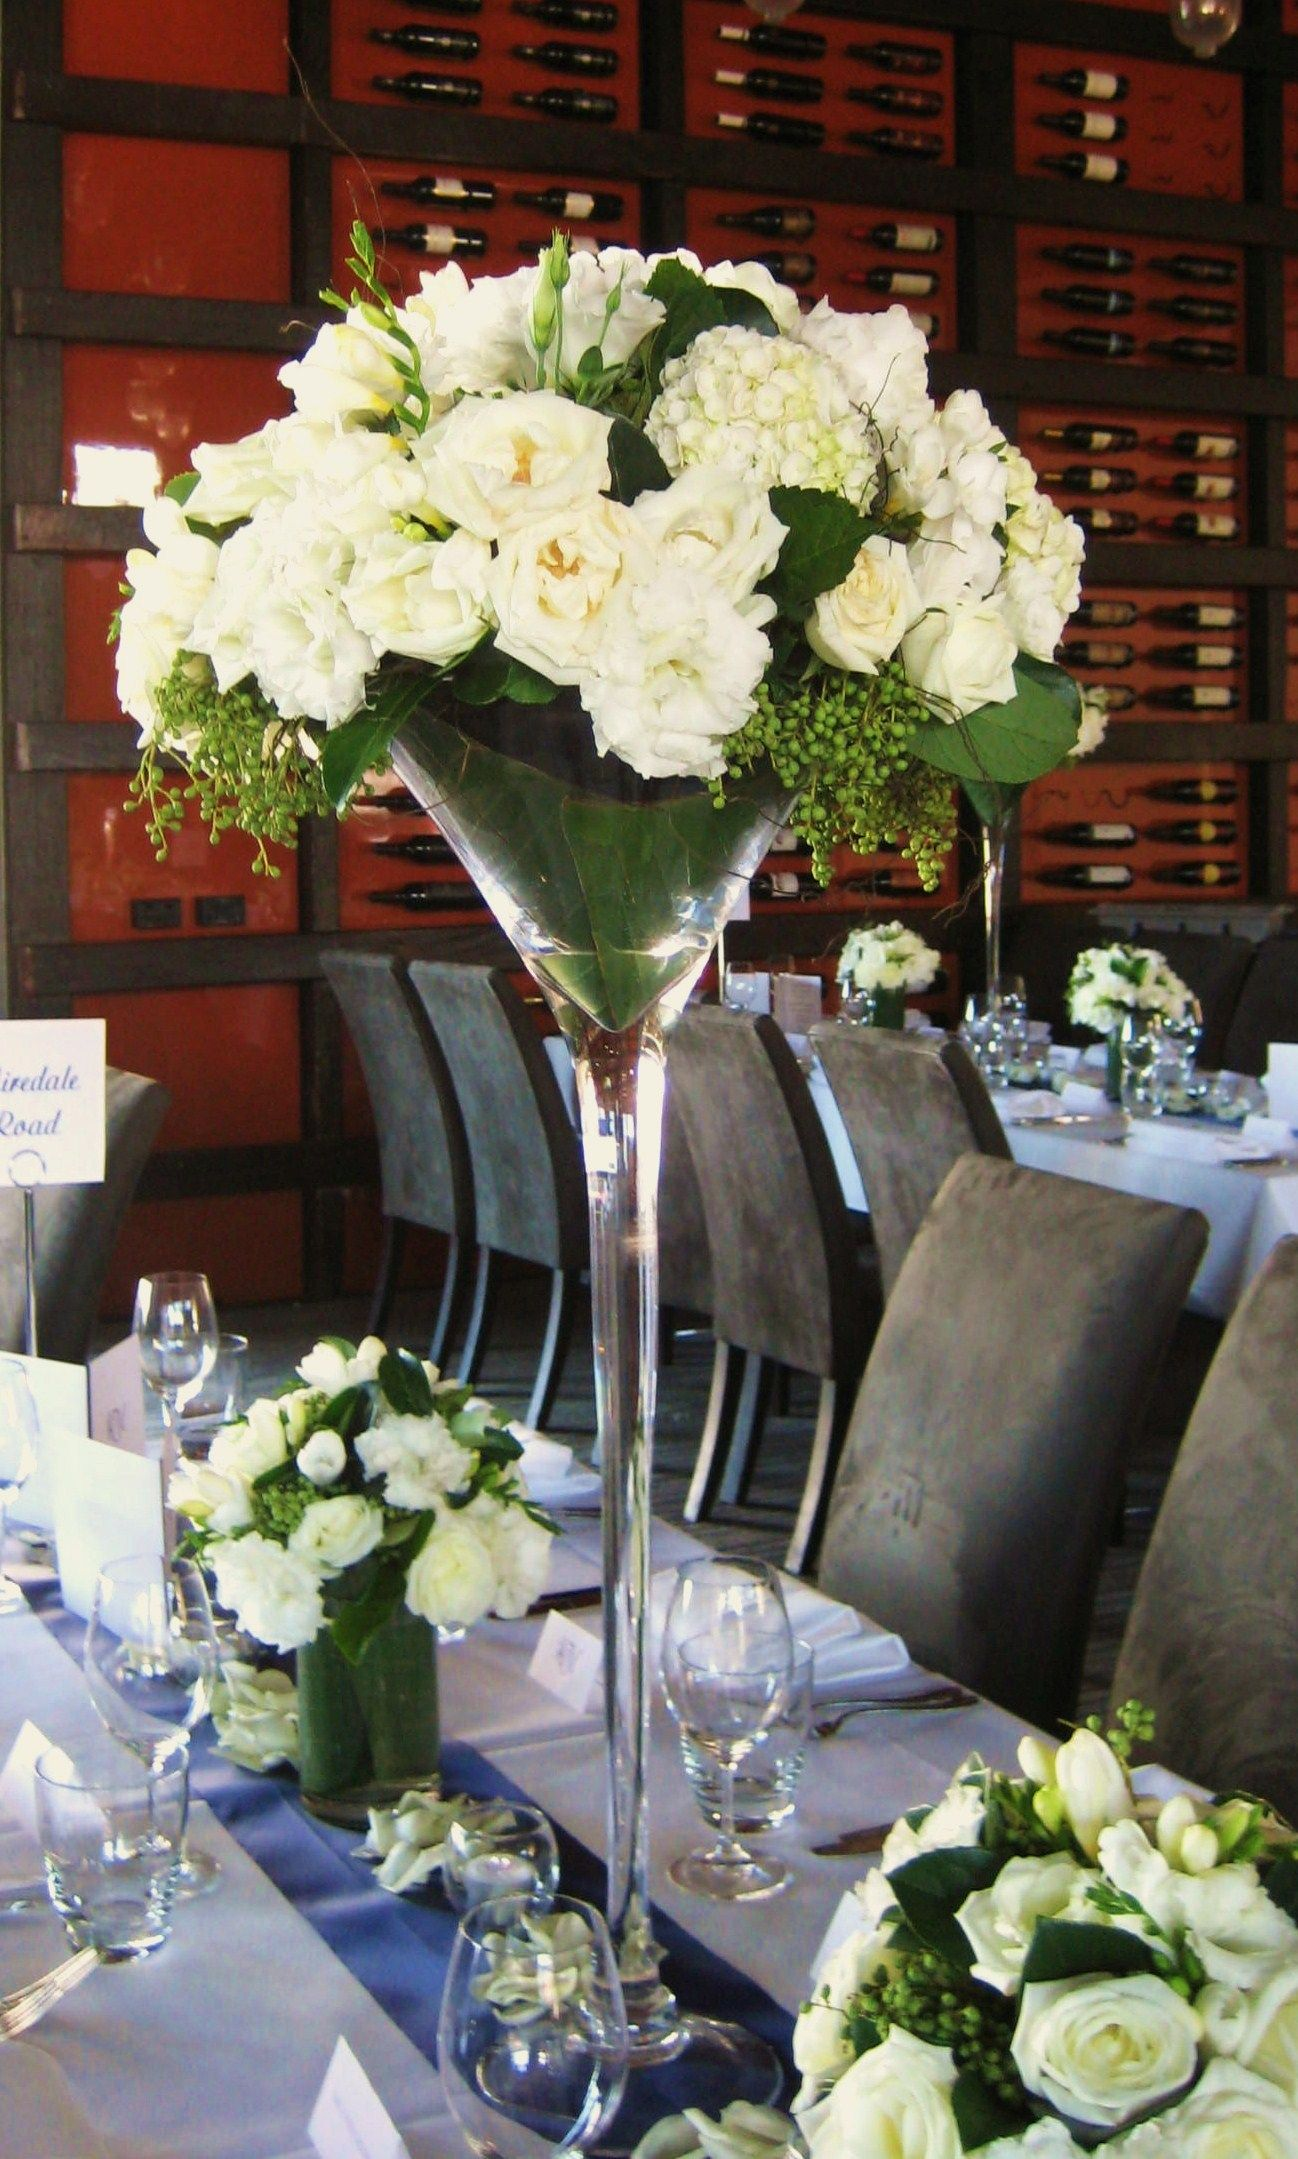 For more great ideas and information about our venues  visit our website www.tidewaterwedding.com or give  us a call 443 786 7220